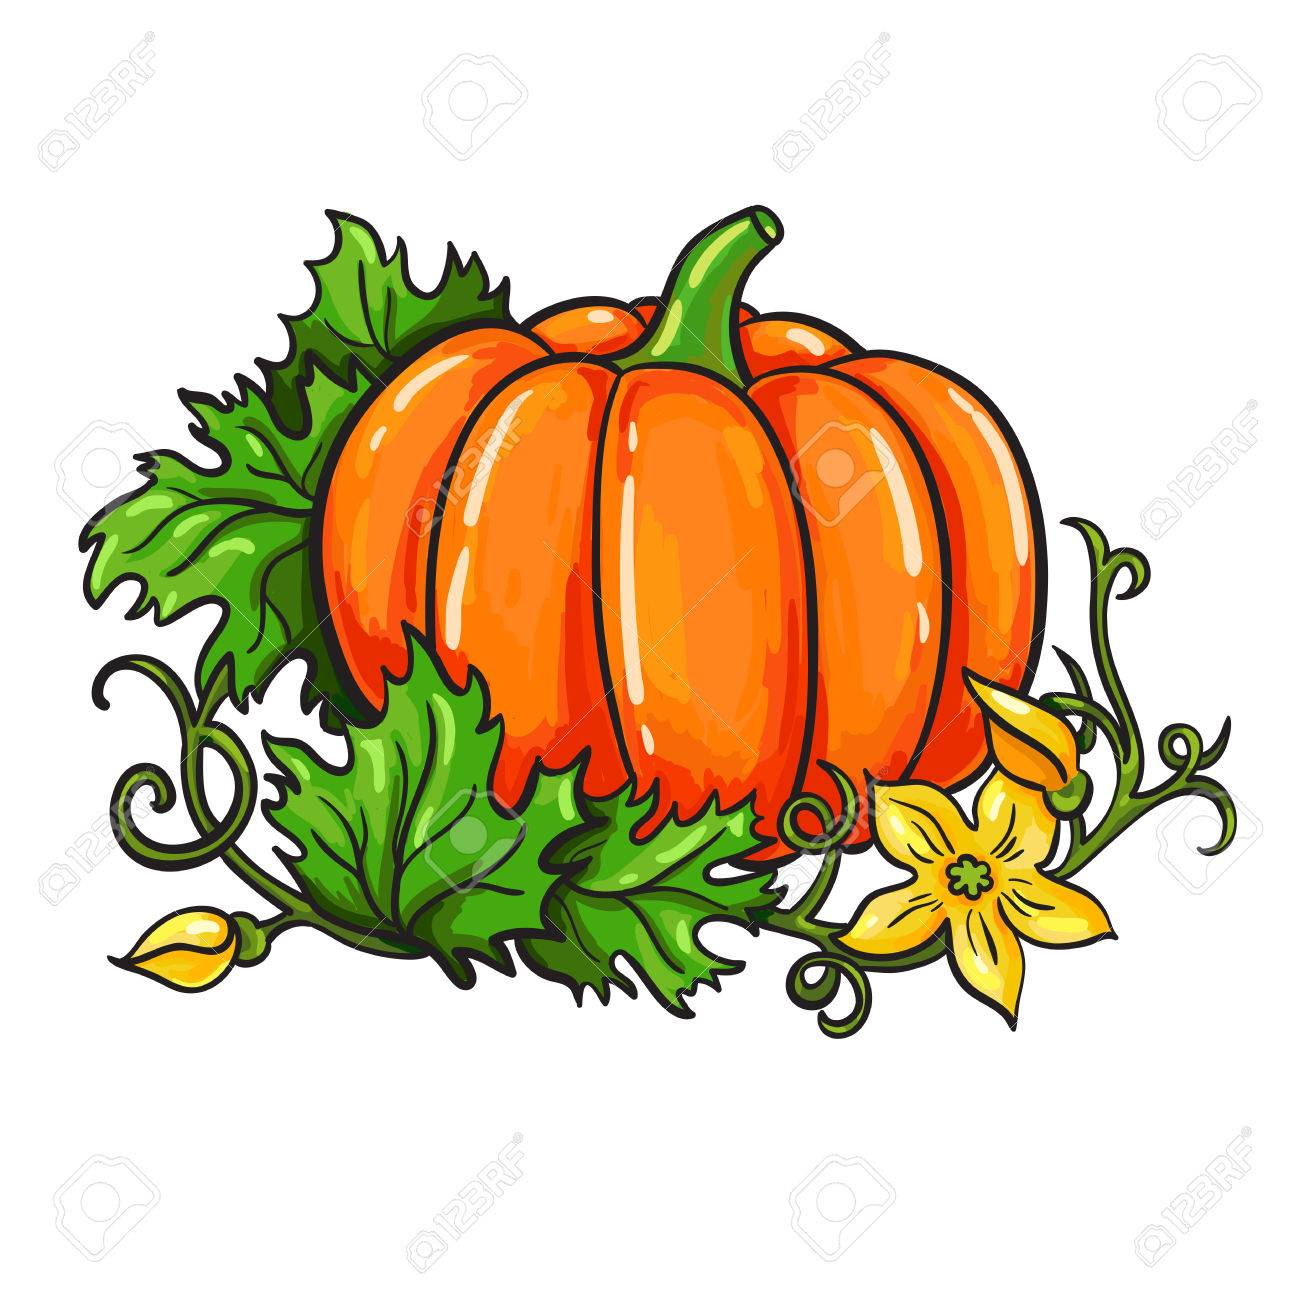 Pumpkin Drawing at GetDrawings.com | Free for personal use ...